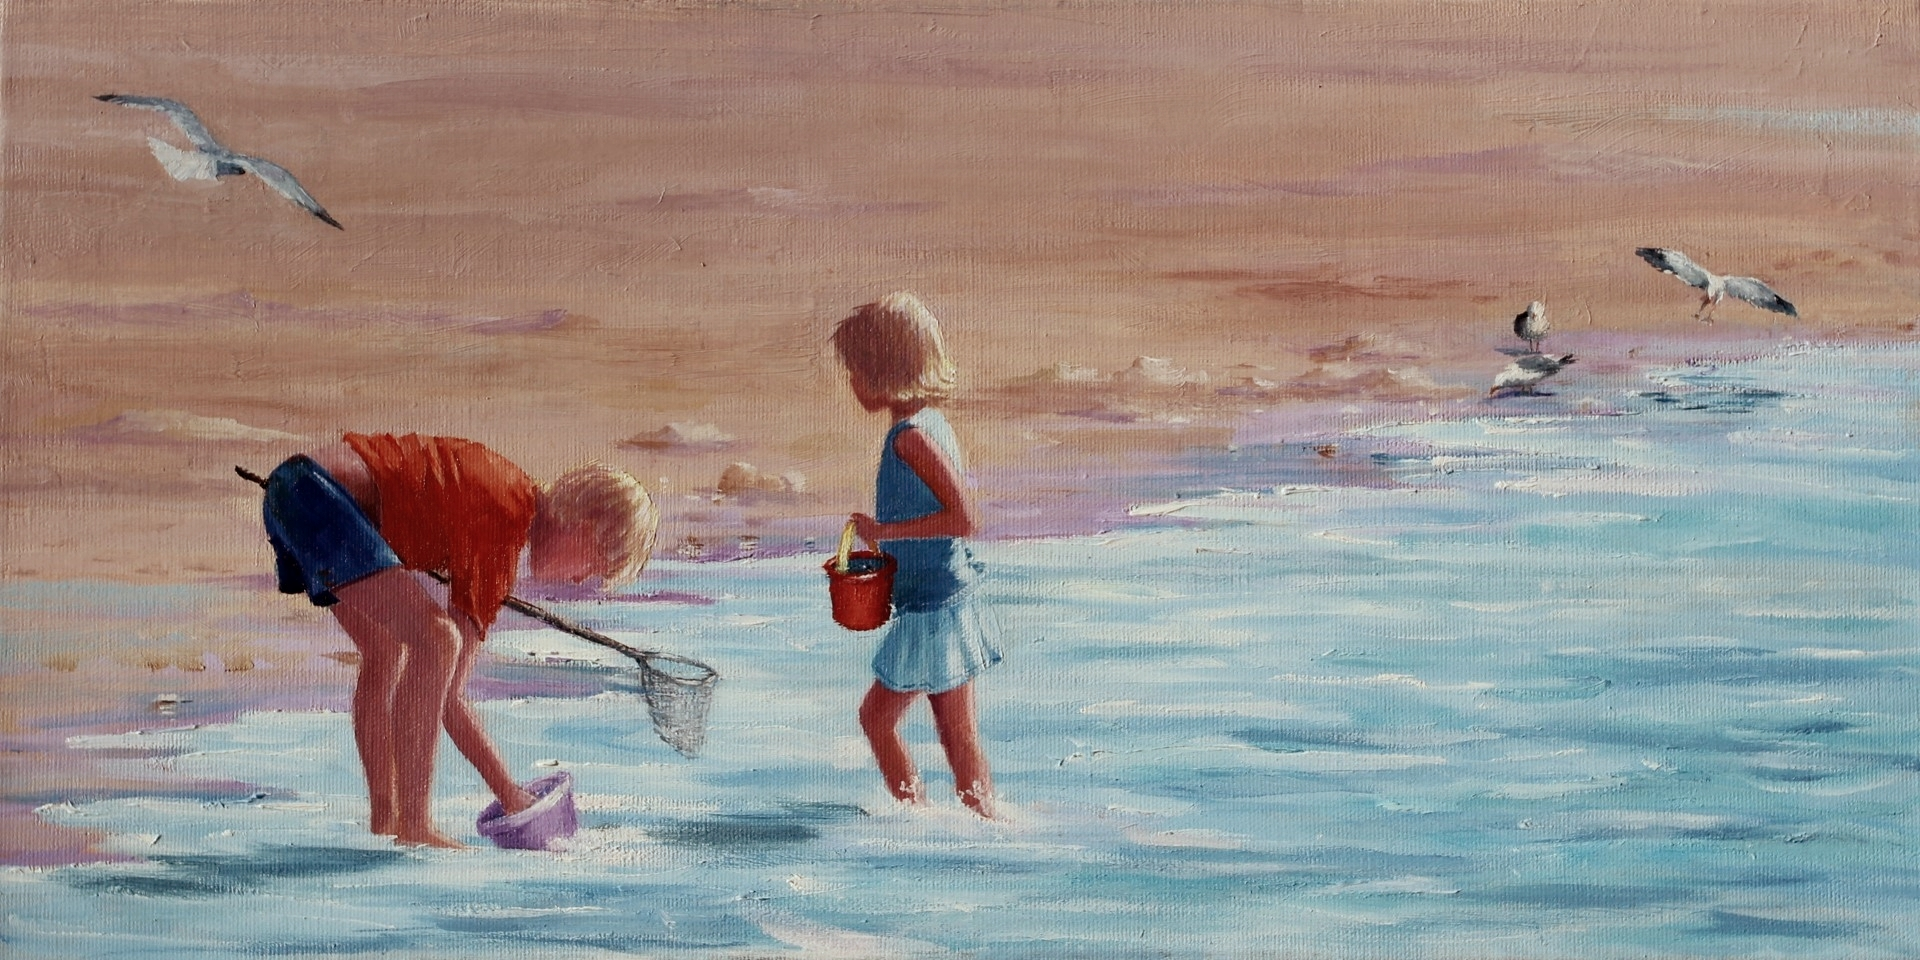 Chesapeake Bay, beachcombers, siblings, sisters, shell hunters seekers, Doris GlovierEastern shore painting, kids, children